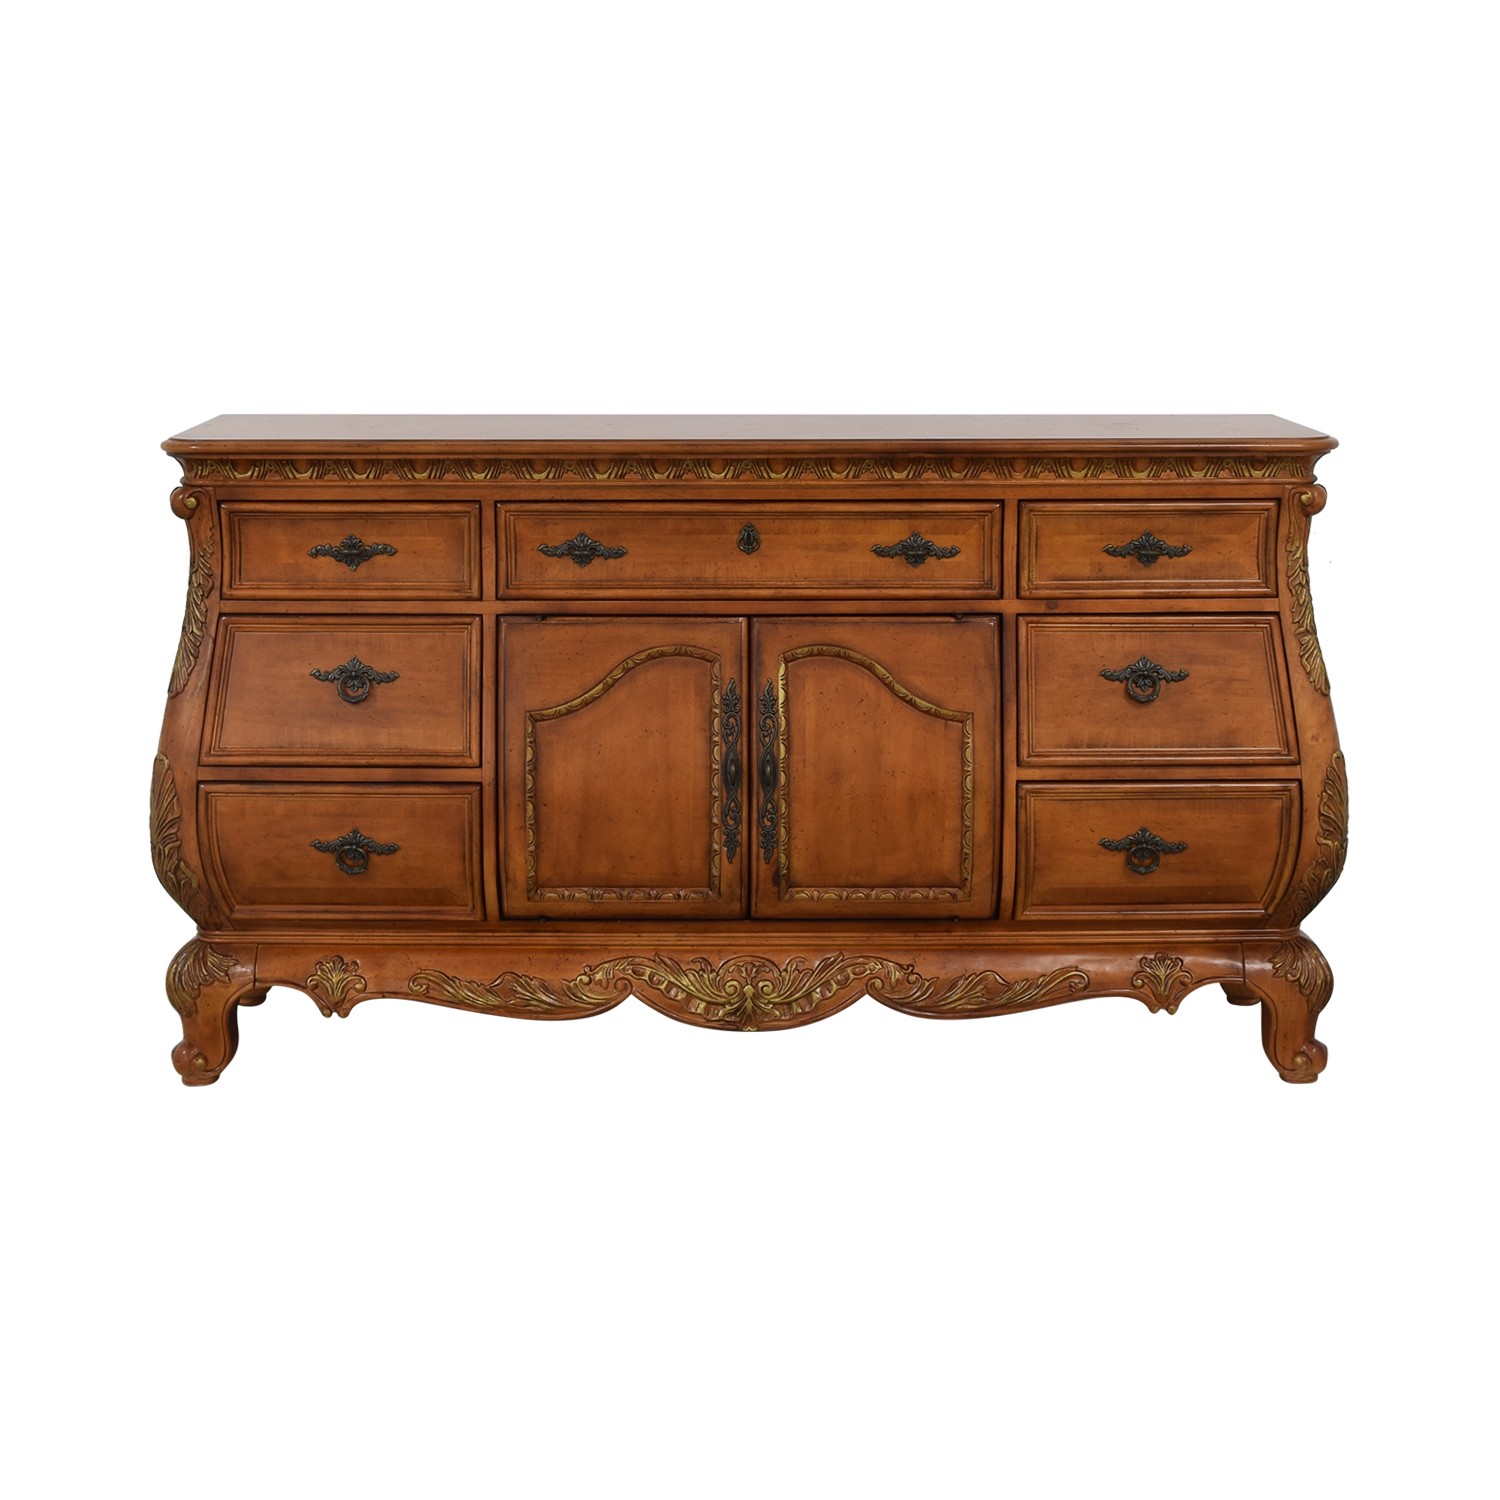 Raymour & Flanigan Raymour & Flanigan Commons Chest used